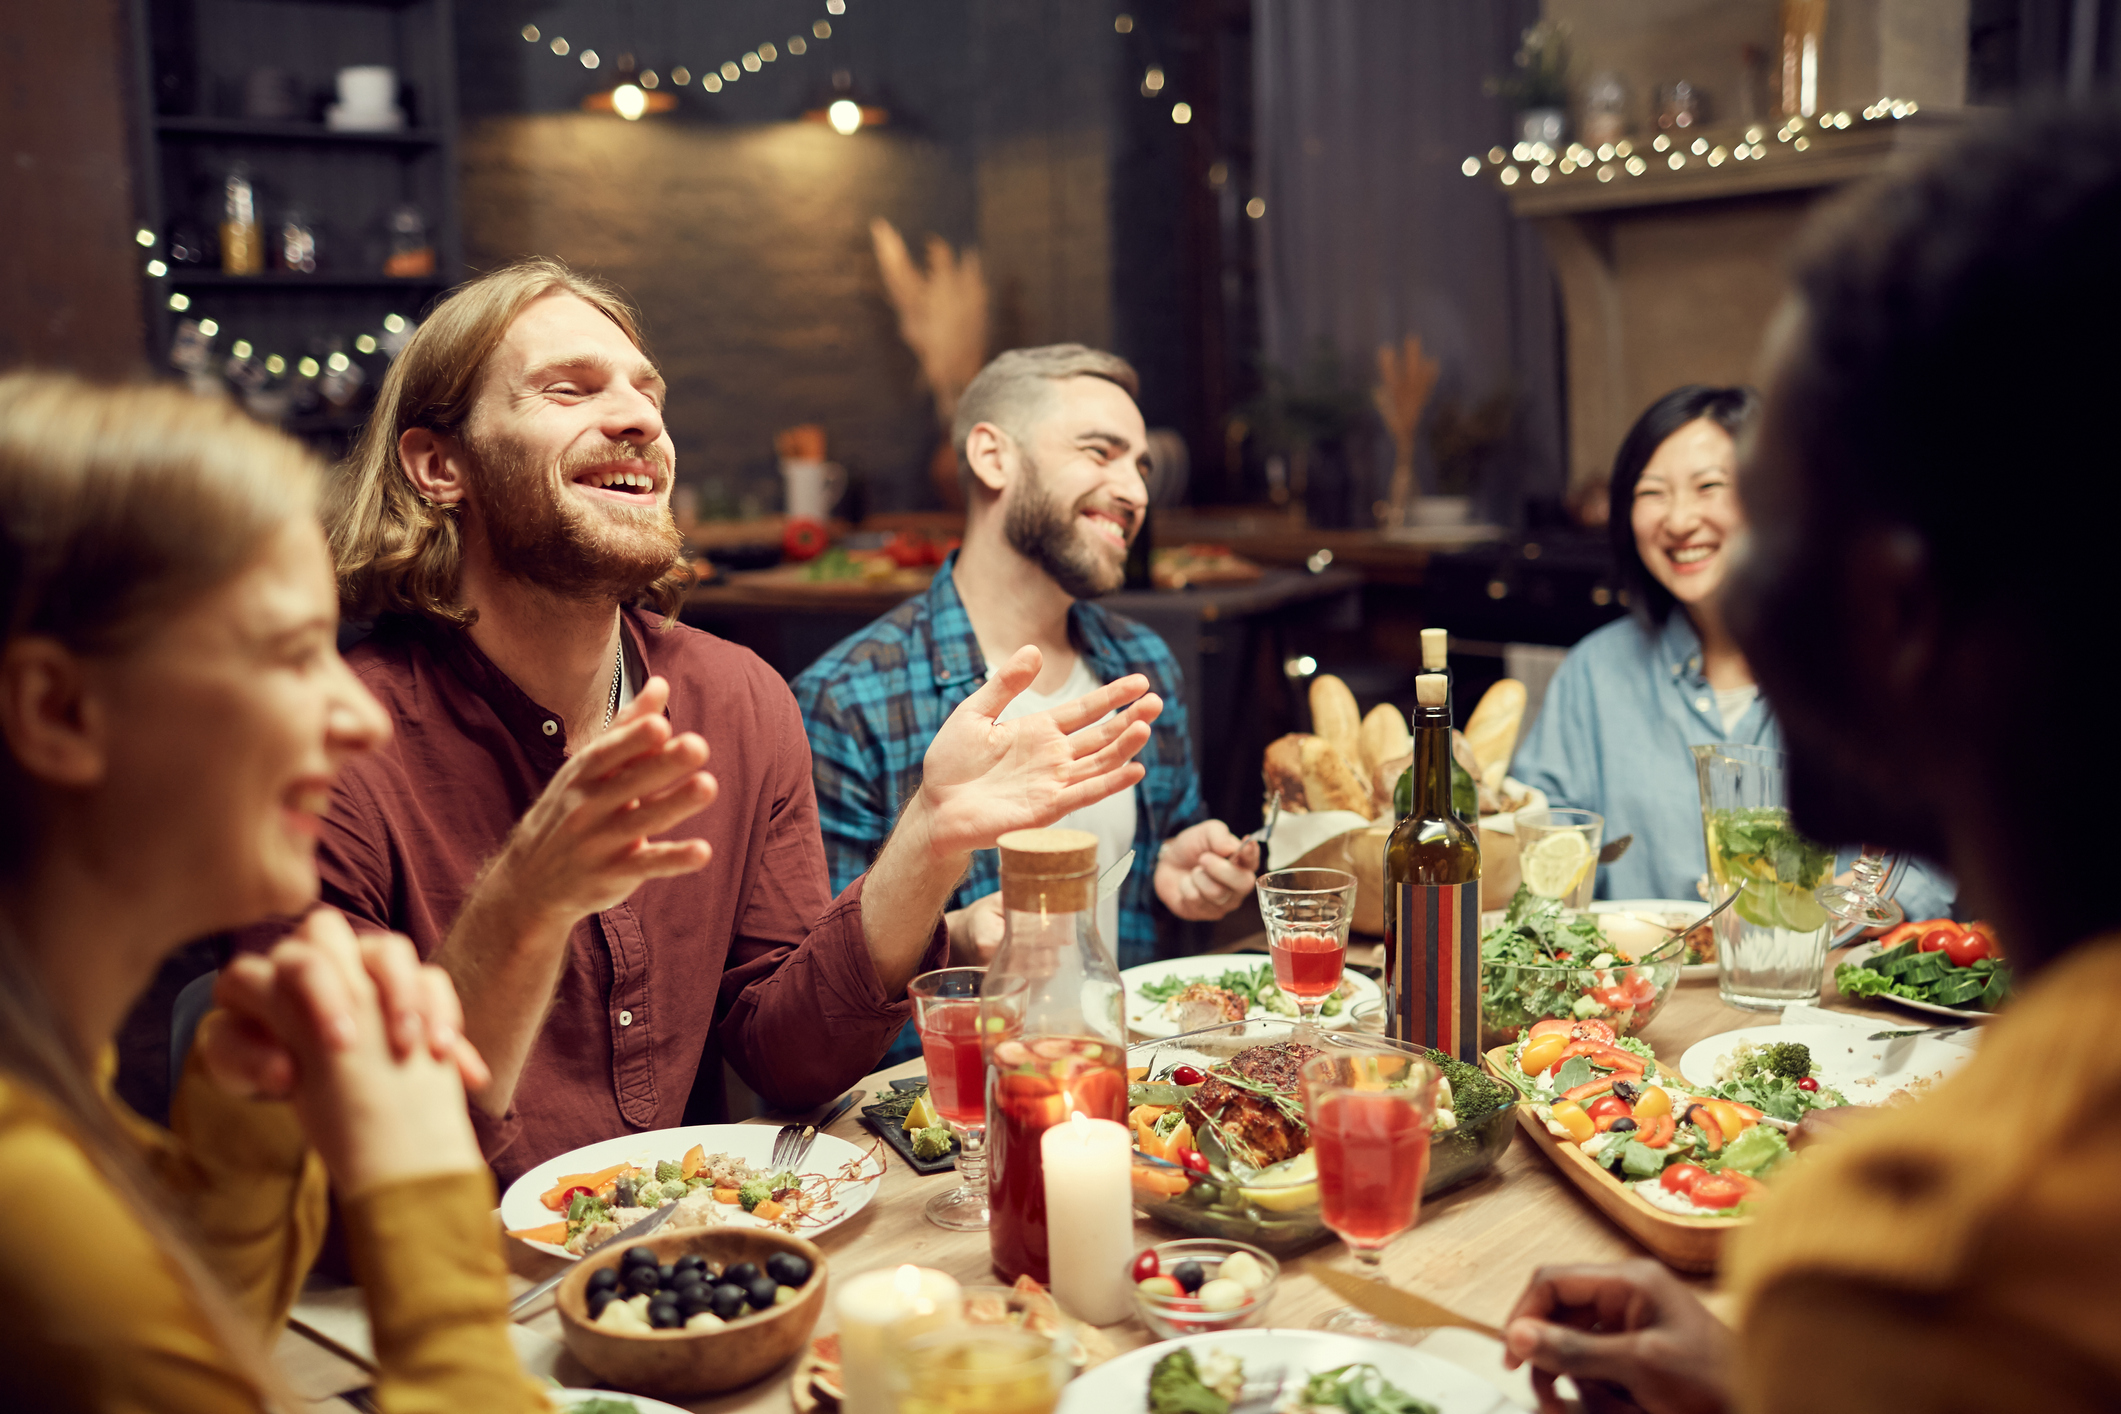 Is the air in your home safe for post-pandemic indoor gatherings?